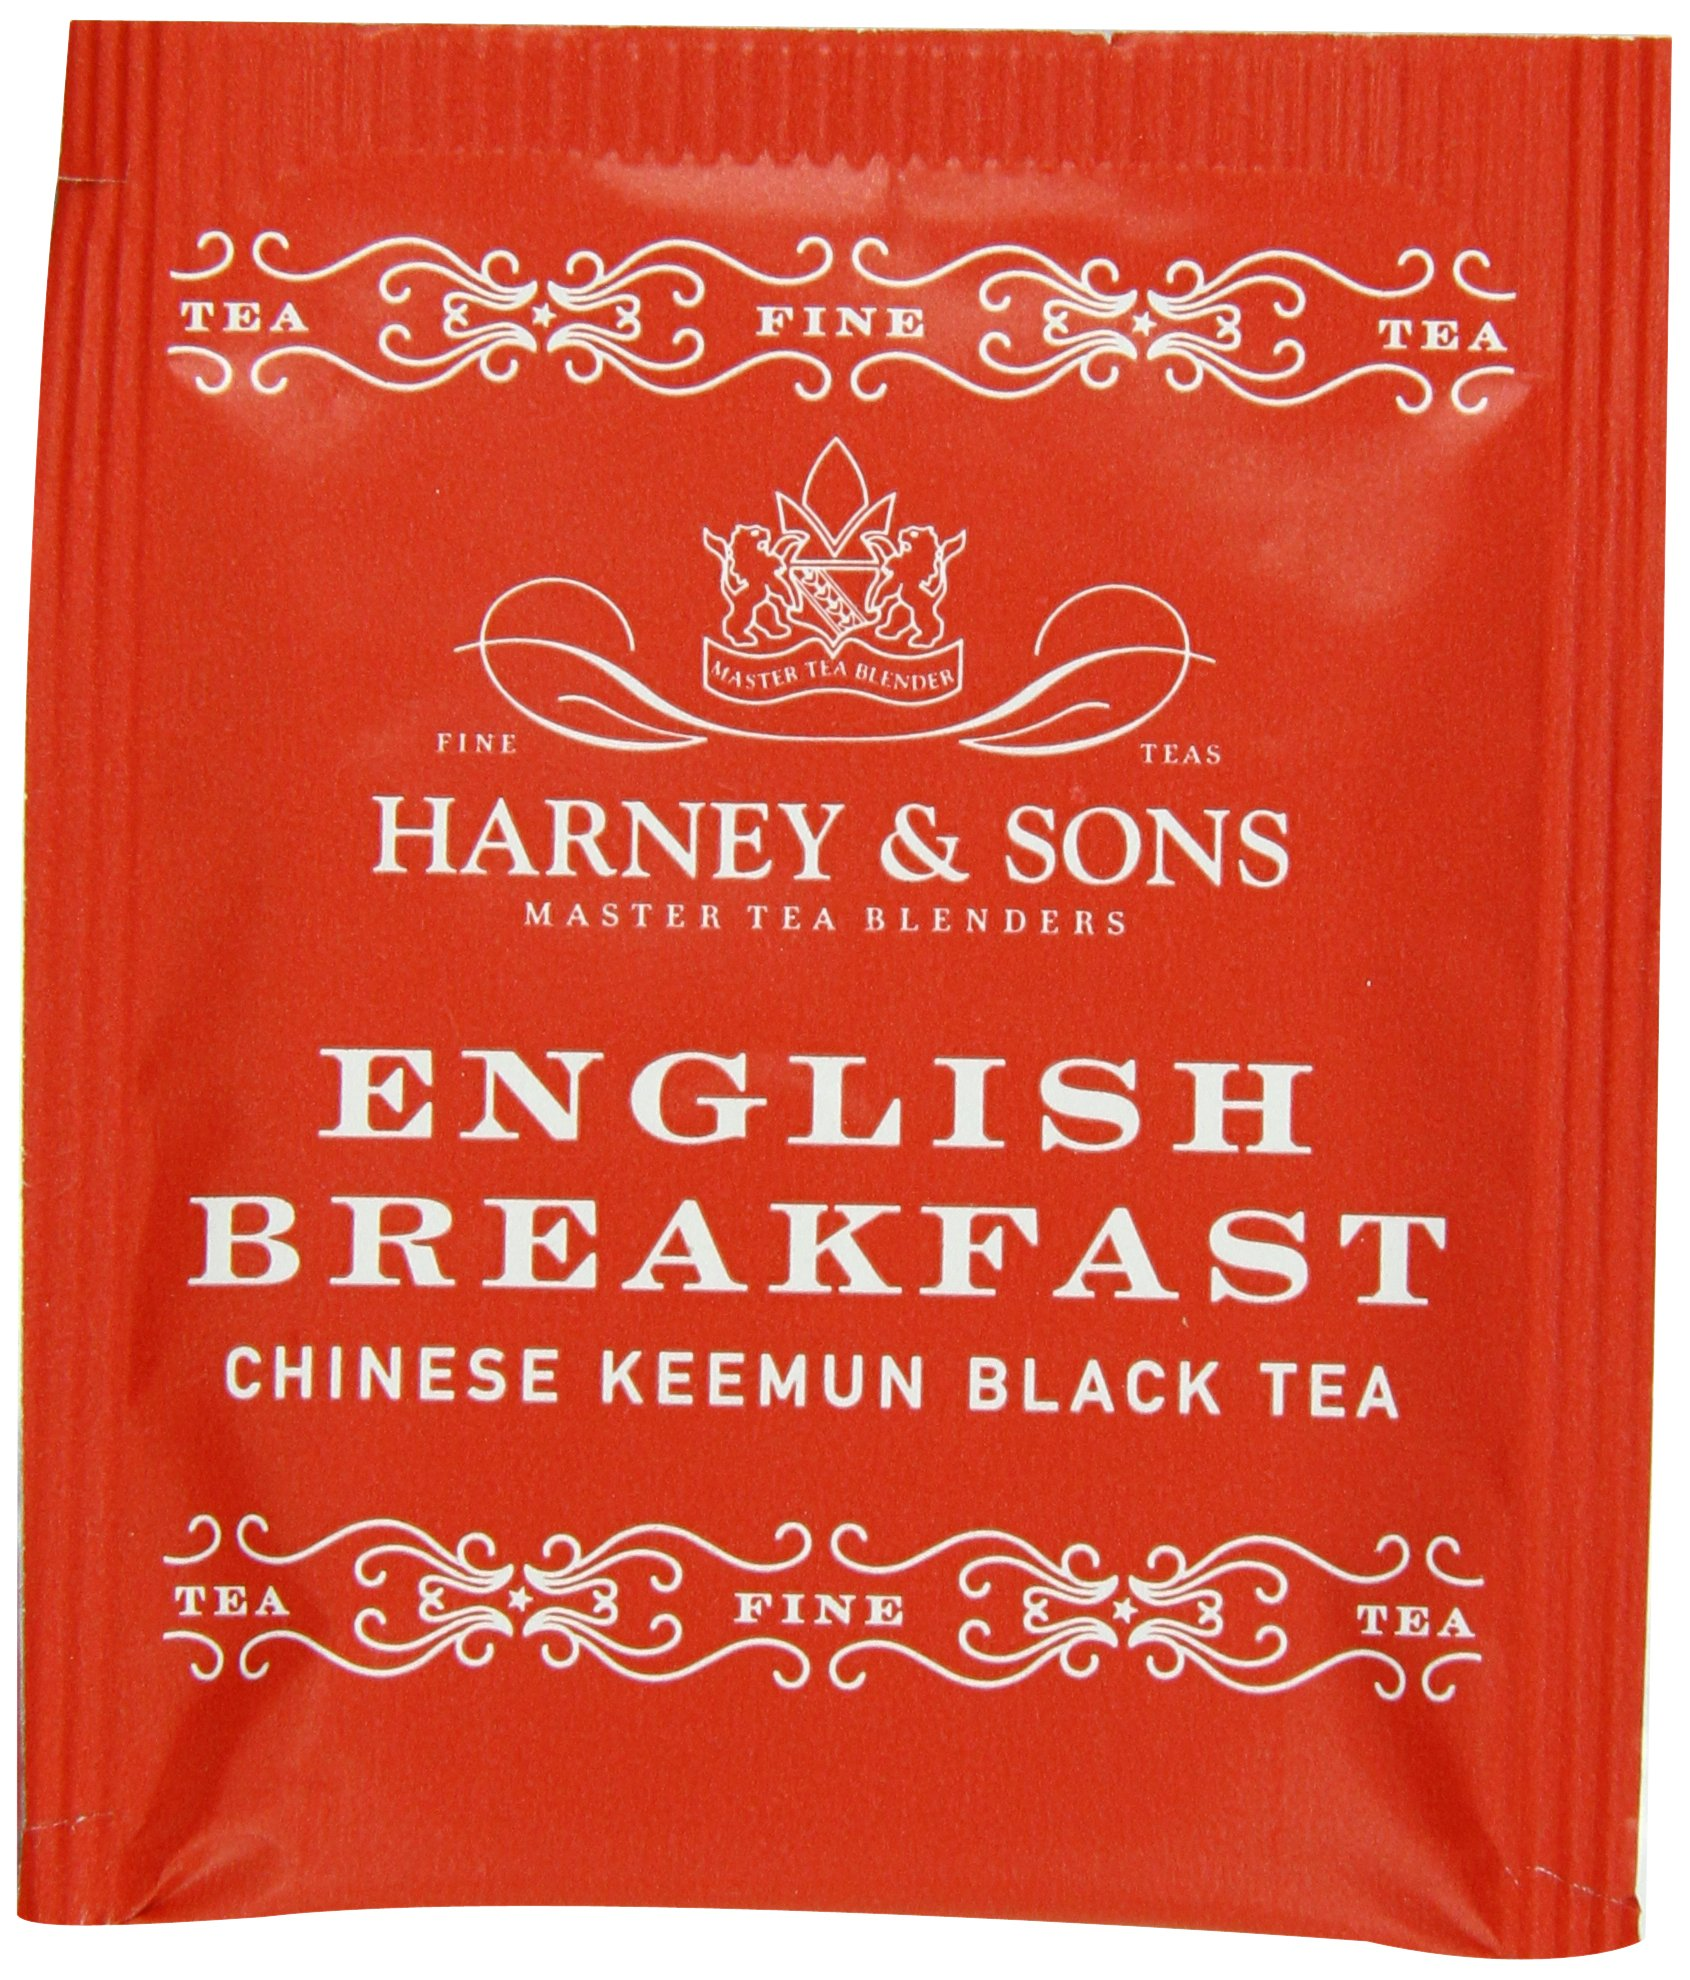 Harney & Sons English Breakfast Tea 100g / 3.57 oz (50 Tea Bags) by Harney & Sons